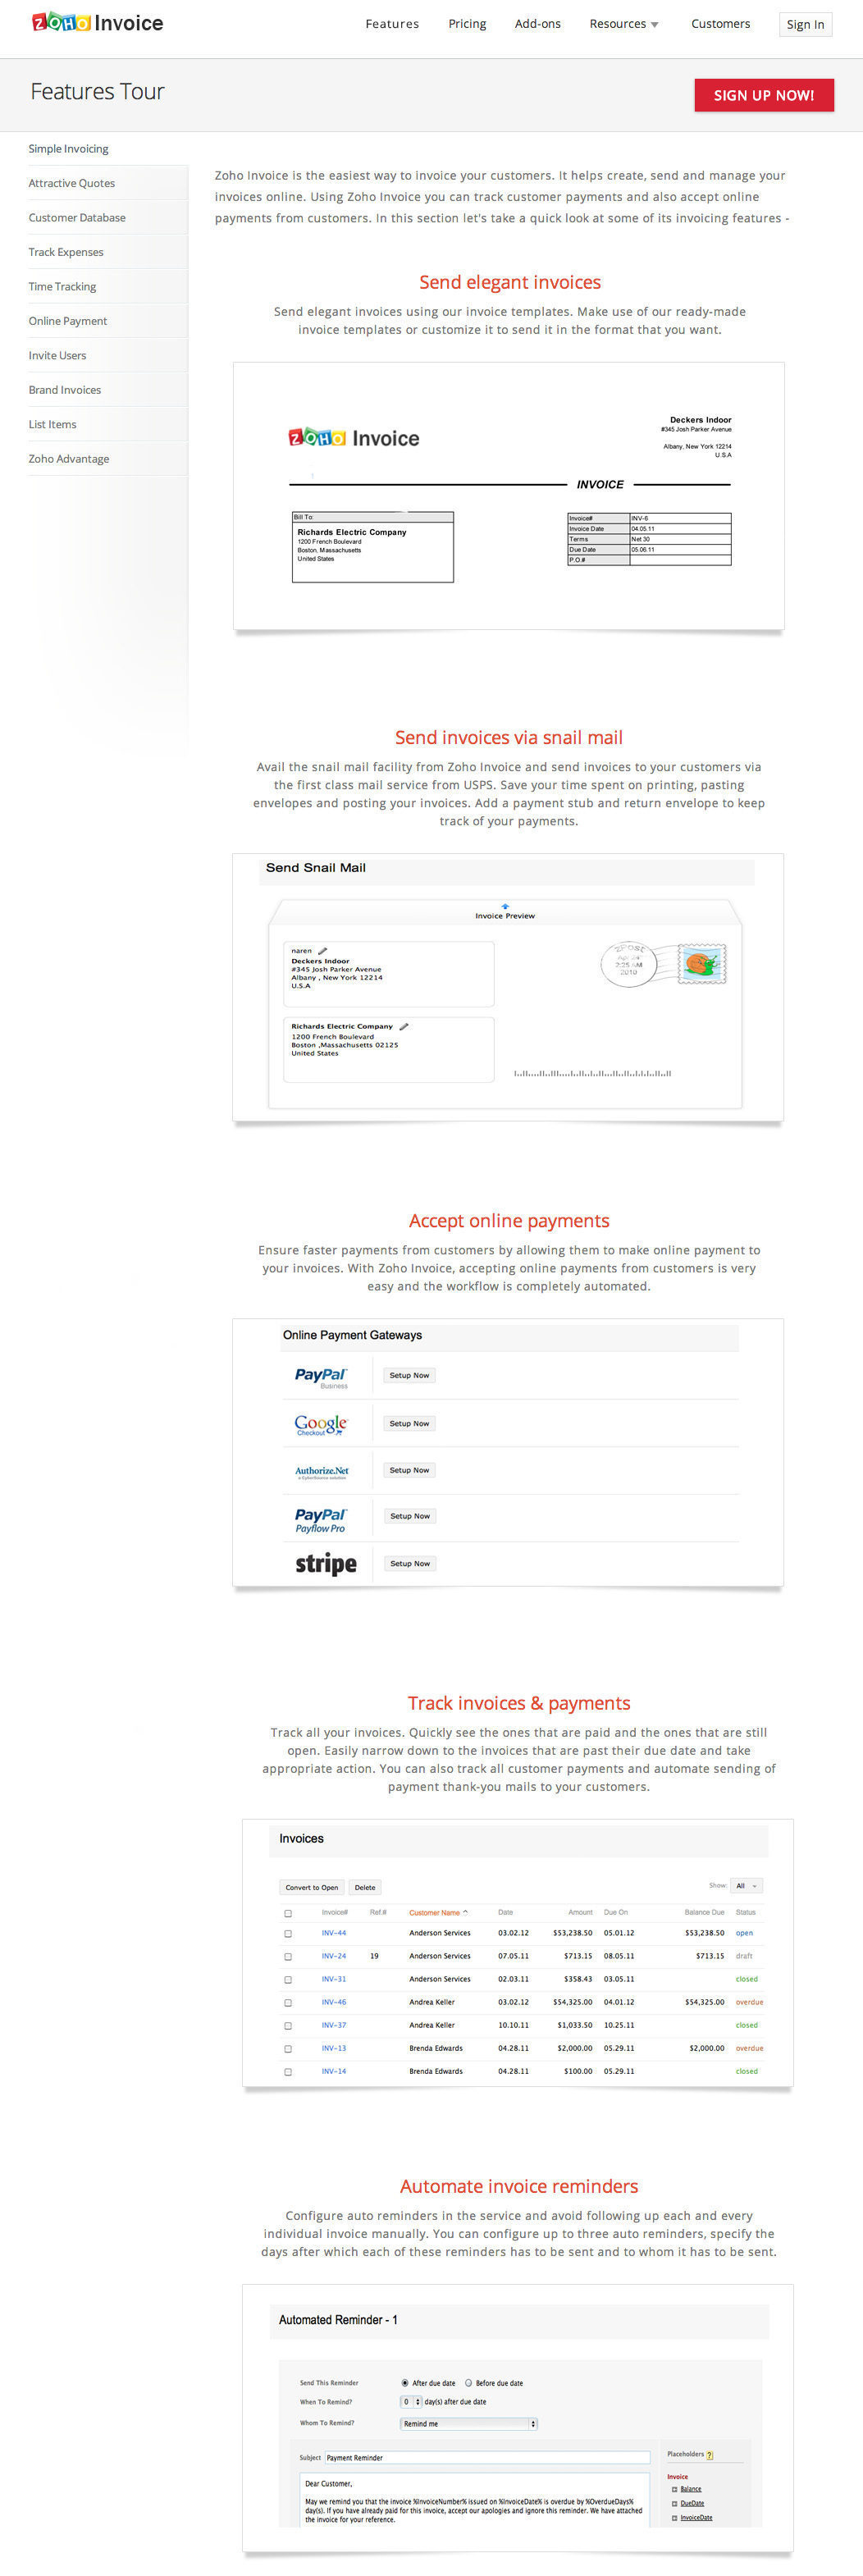 Hucareus  Picturesque Top  Complaints And Reviews About Zoho Invoice With Exciting Zoho Invoice Pricing Zoho Invoice  Simple Invoicing  With Alluring Free Plumbing Invoice Template Also Carbon Invoice In Addition Process The Invoice And Free Blank Printable Invoice As Well As Commercial Invoice Customs Additionally Invoice Template Australia From Consumeraffairscom With Hucareus  Exciting Top  Complaints And Reviews About Zoho Invoice With Alluring Zoho Invoice Pricing Zoho Invoice  Simple Invoicing  And Picturesque Free Plumbing Invoice Template Also Carbon Invoice In Addition Process The Invoice From Consumeraffairscom